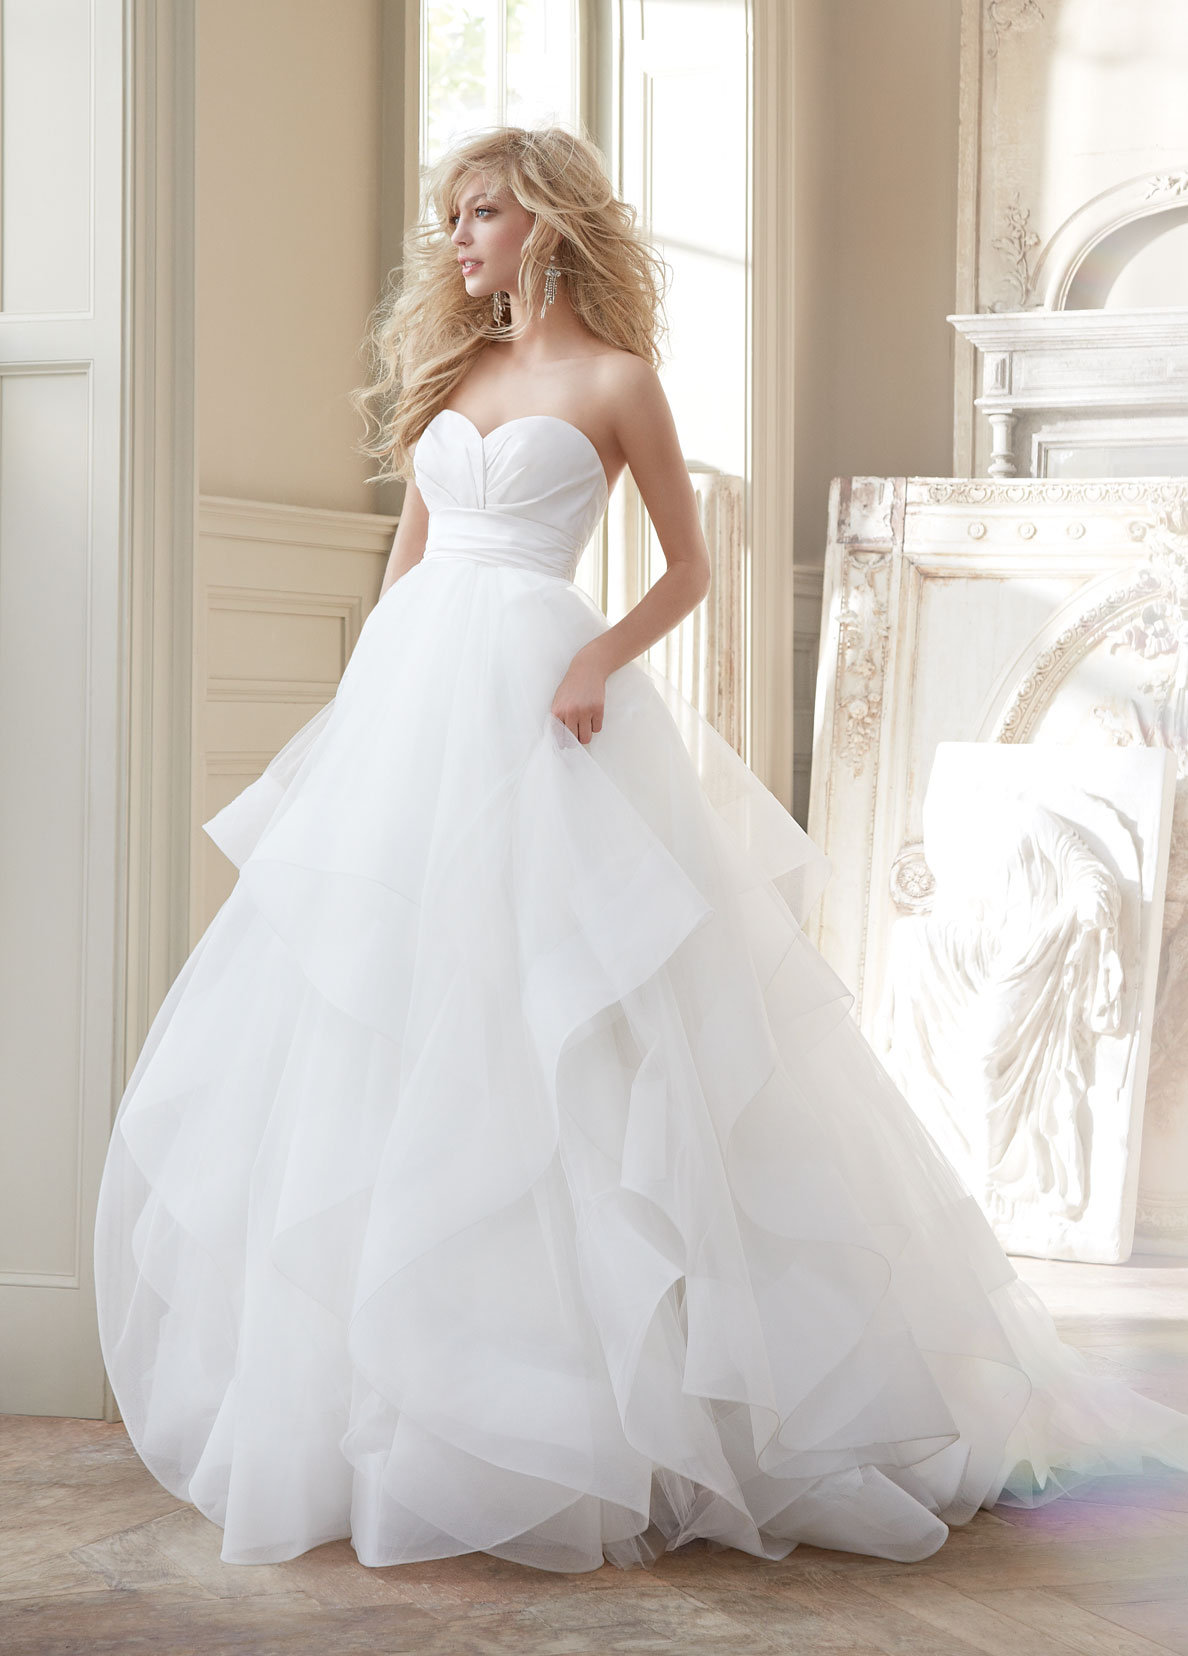 wedding dresses style photo - 1